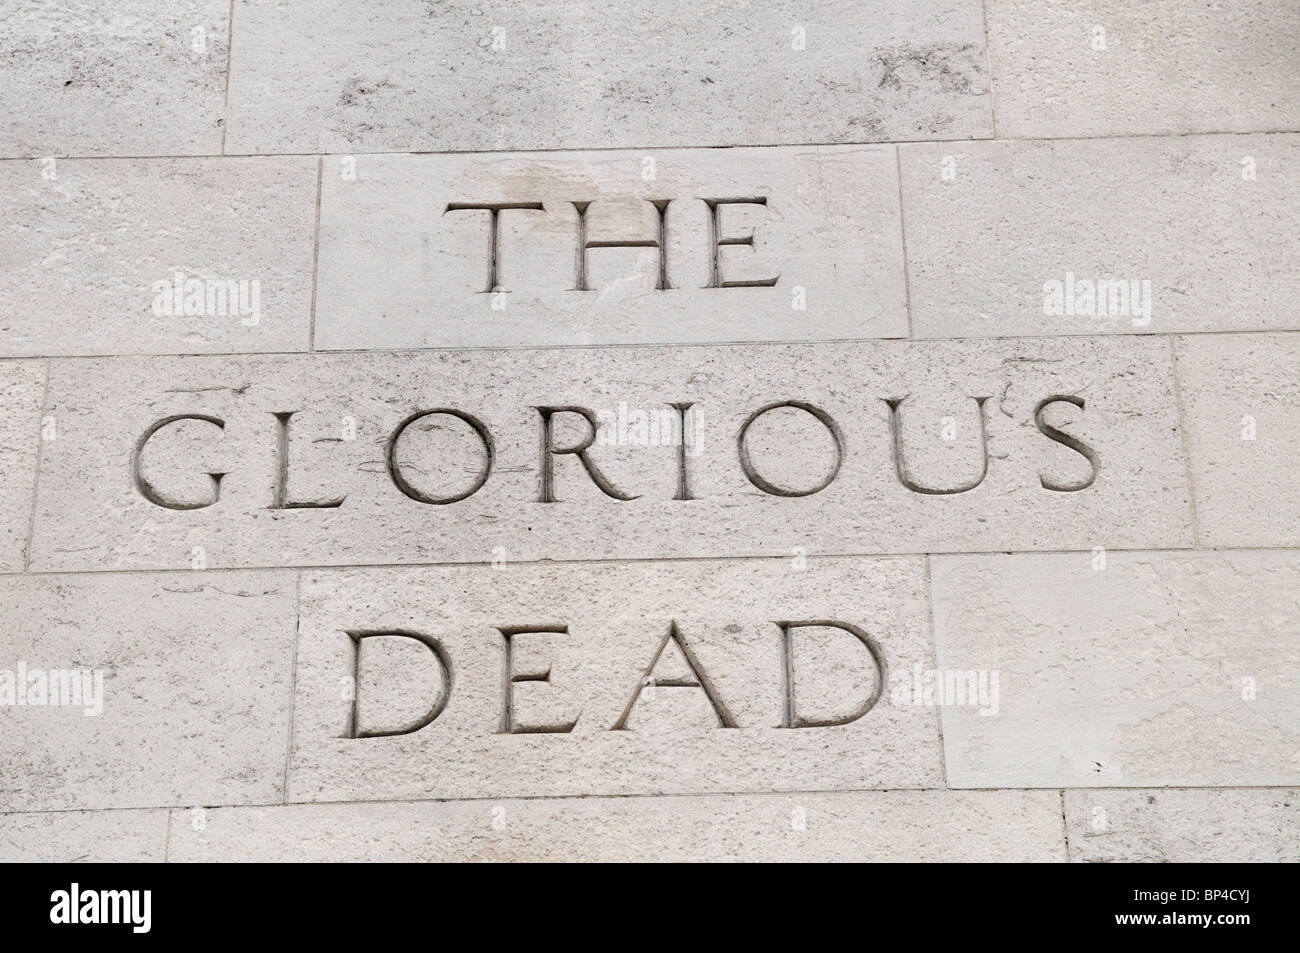 The Glorious Dead inscription on The Cenotaph War Memorial, Whitehall, London, England, UK Stock Photo